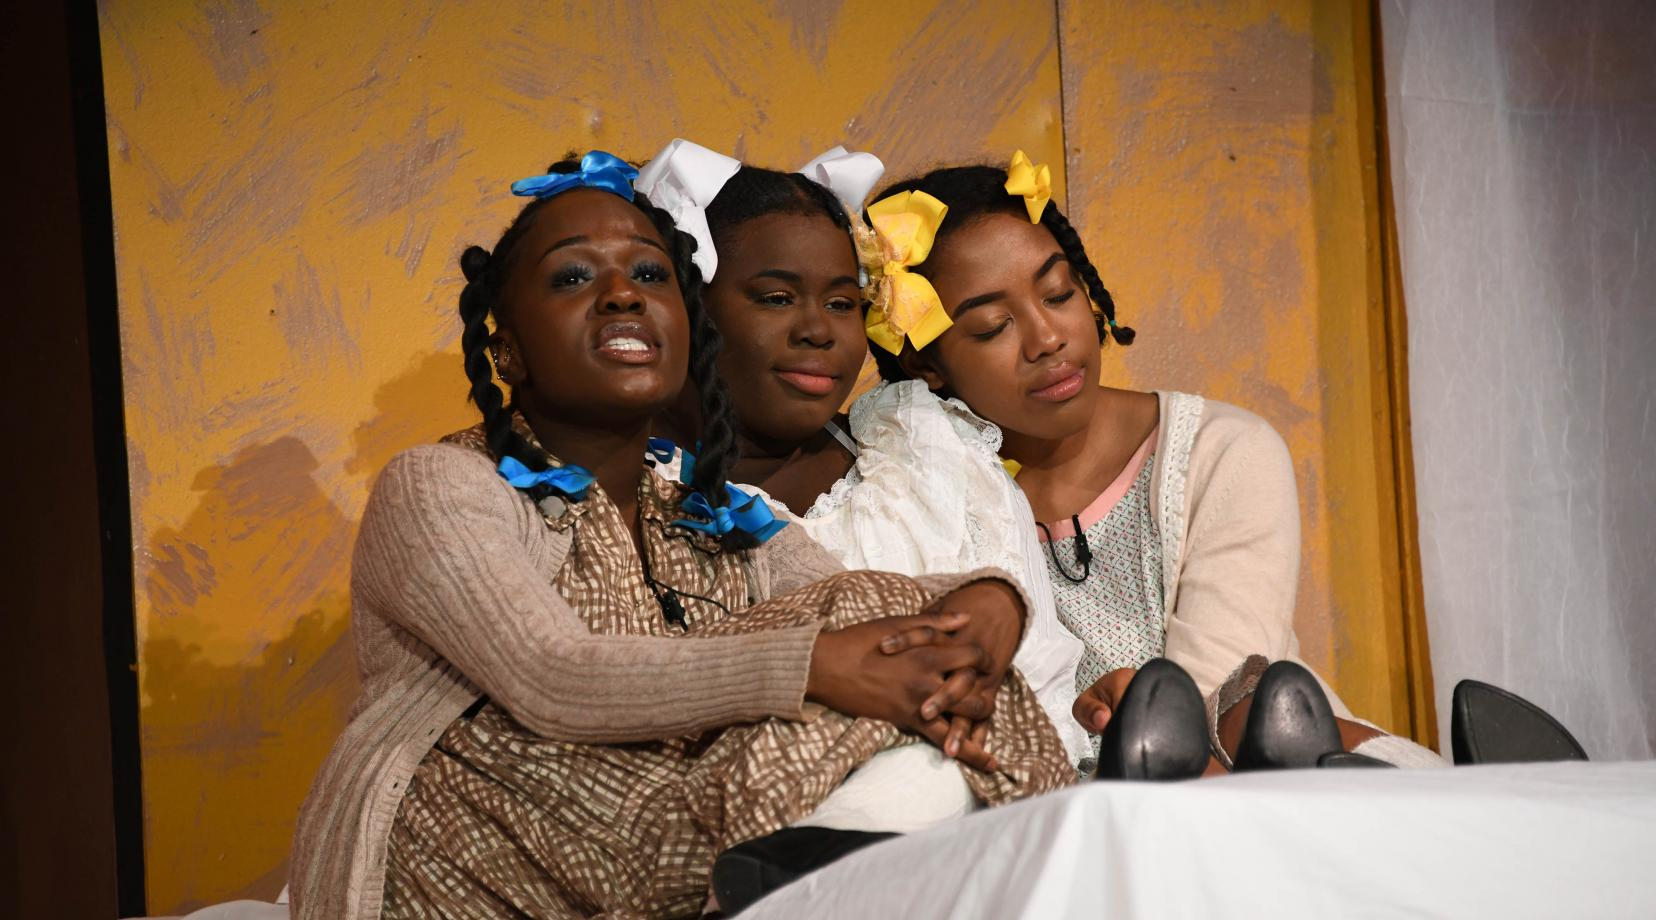 (L-r) Claudia, Frieda and Pecola (performed by Zaire Davis, Chloe Humphrey and Elia Agudo, respectively) huddle together during a scene of the Bluest Eye, which took the stage at Delaware State University Oct. 31 and Nov. 1.